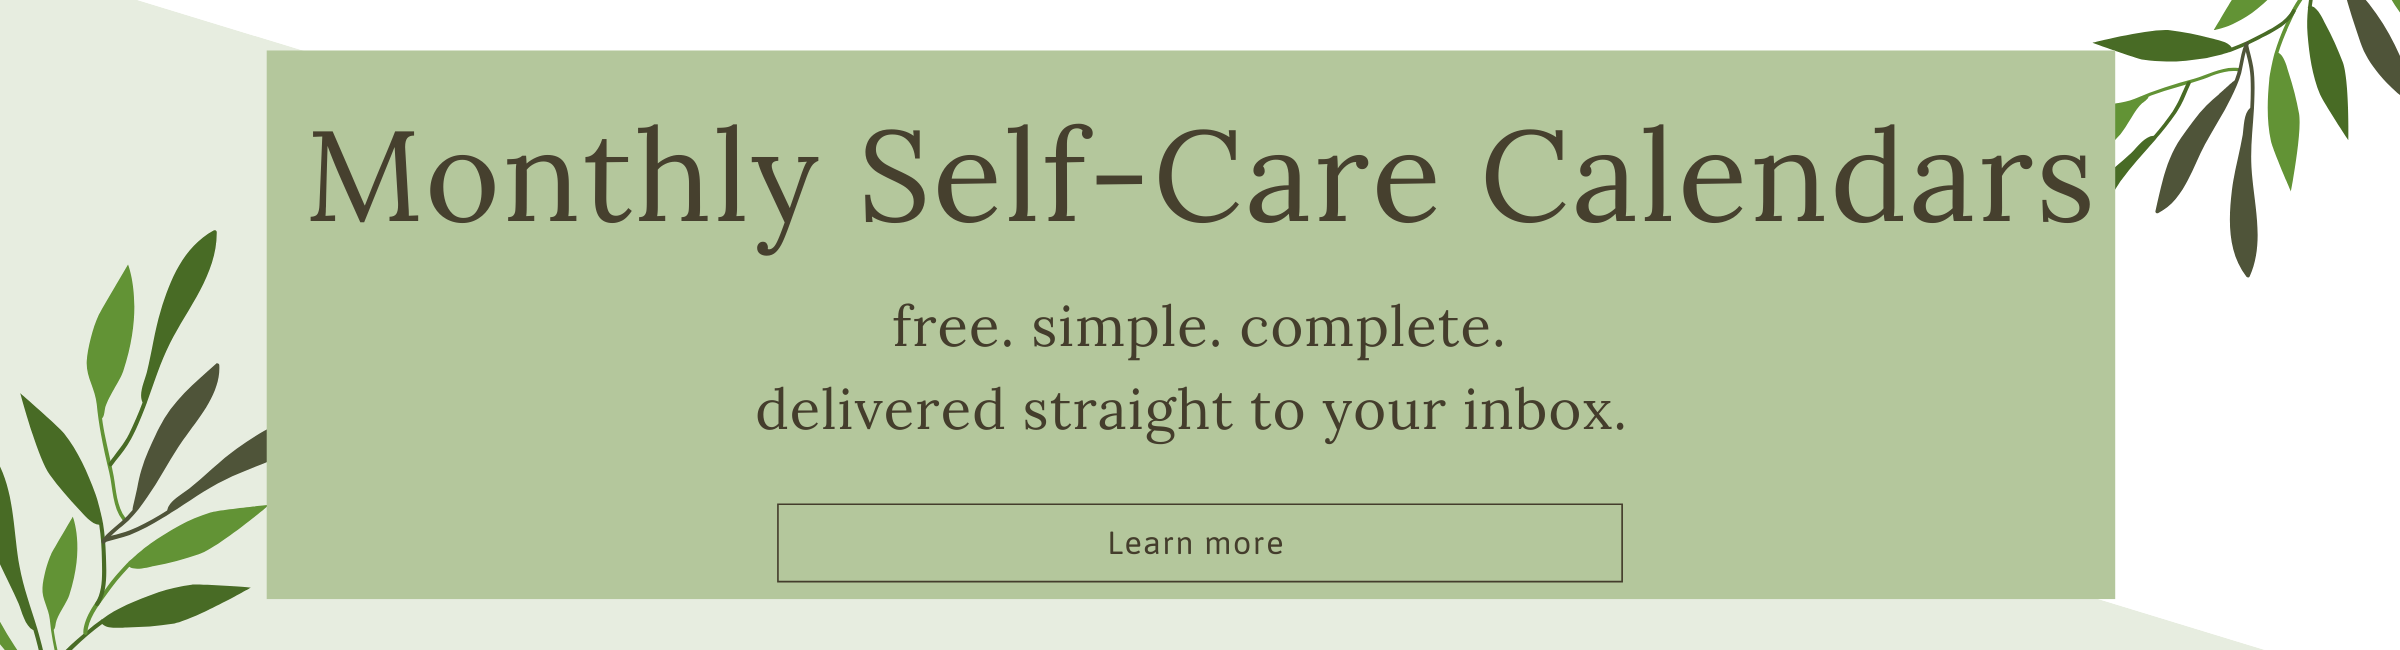 Monthly self-care calendars